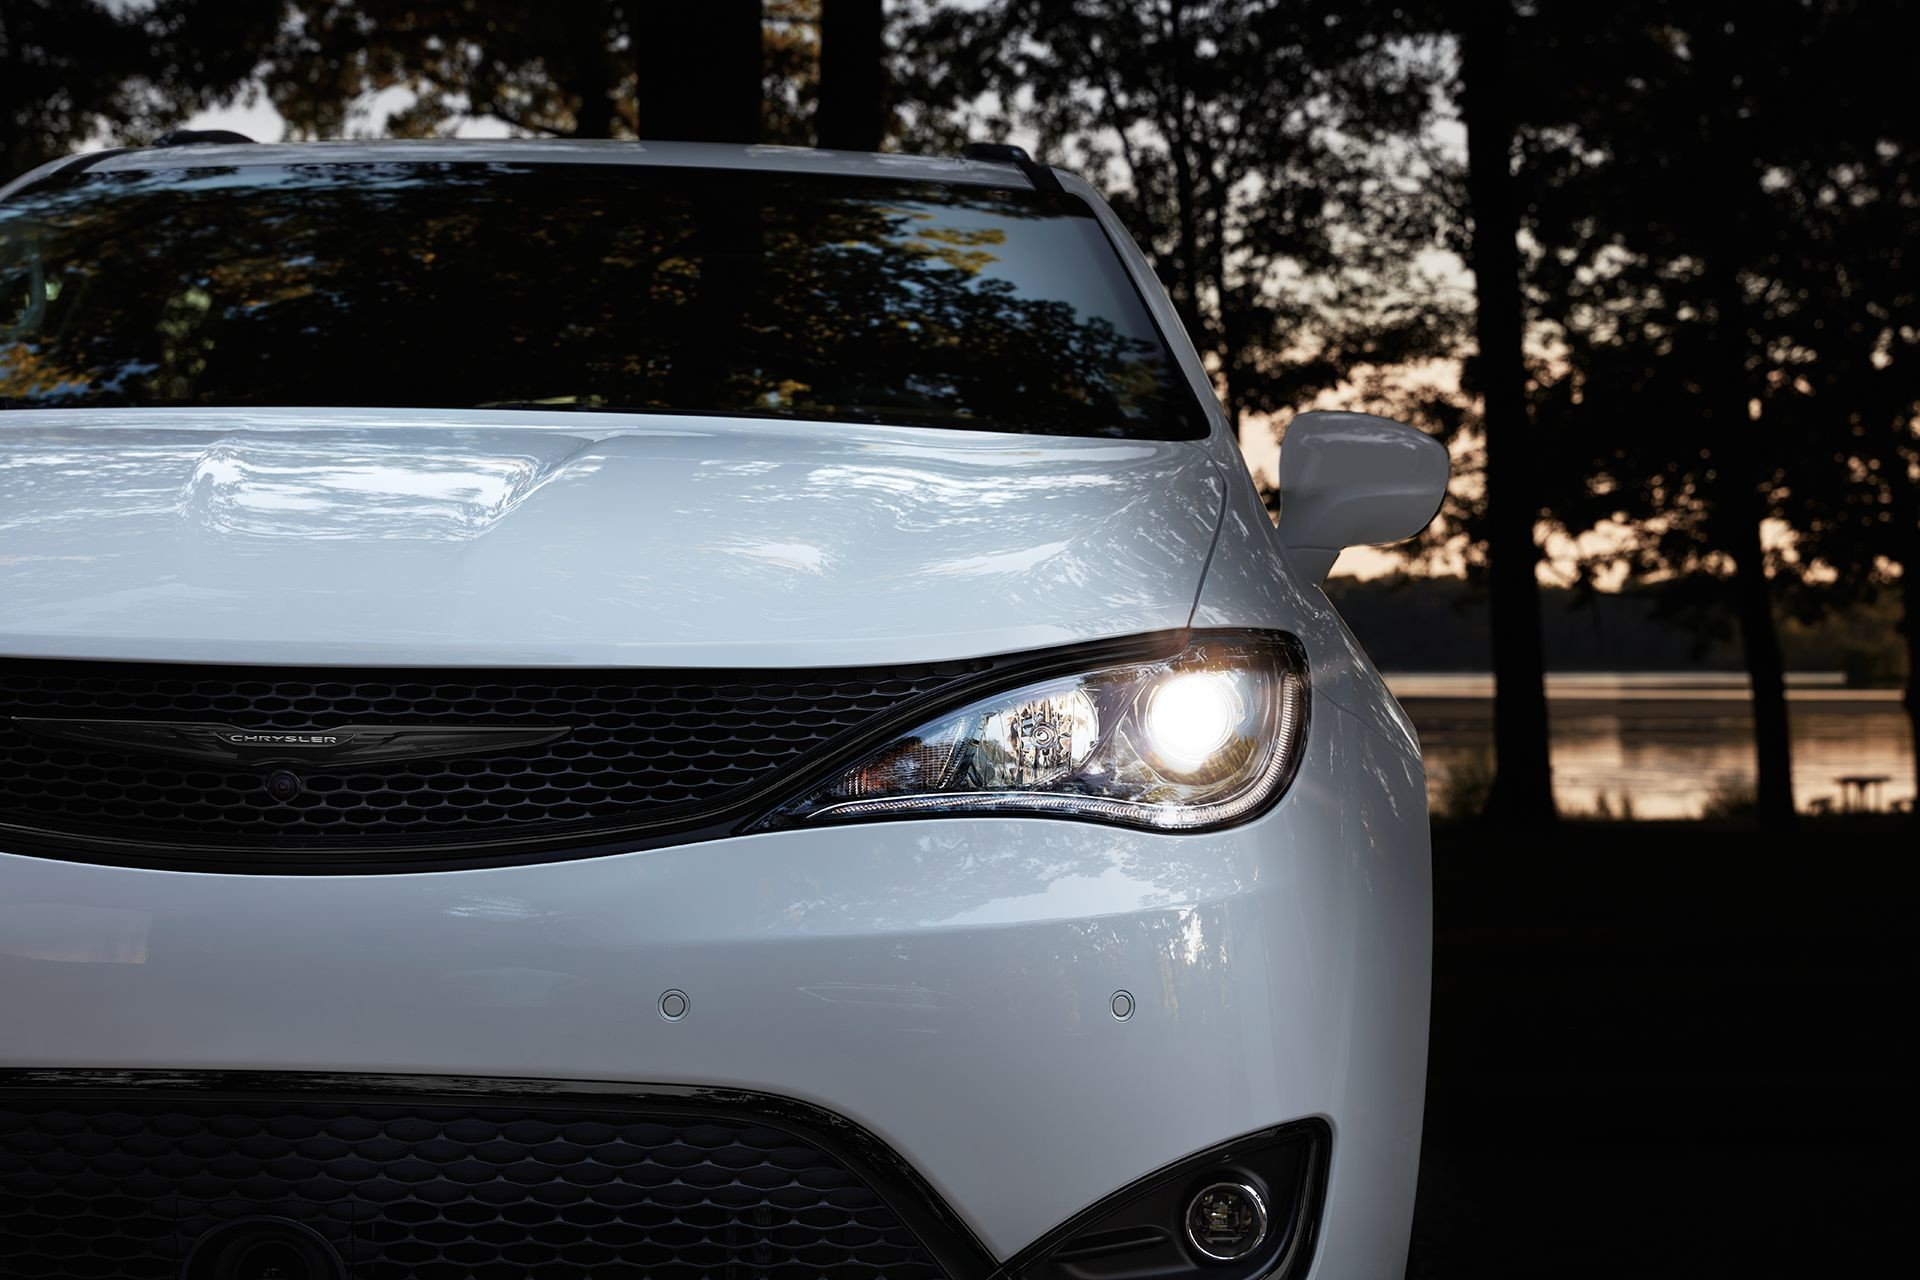 2019 Chrysler Pacifica white exterior LED lamps